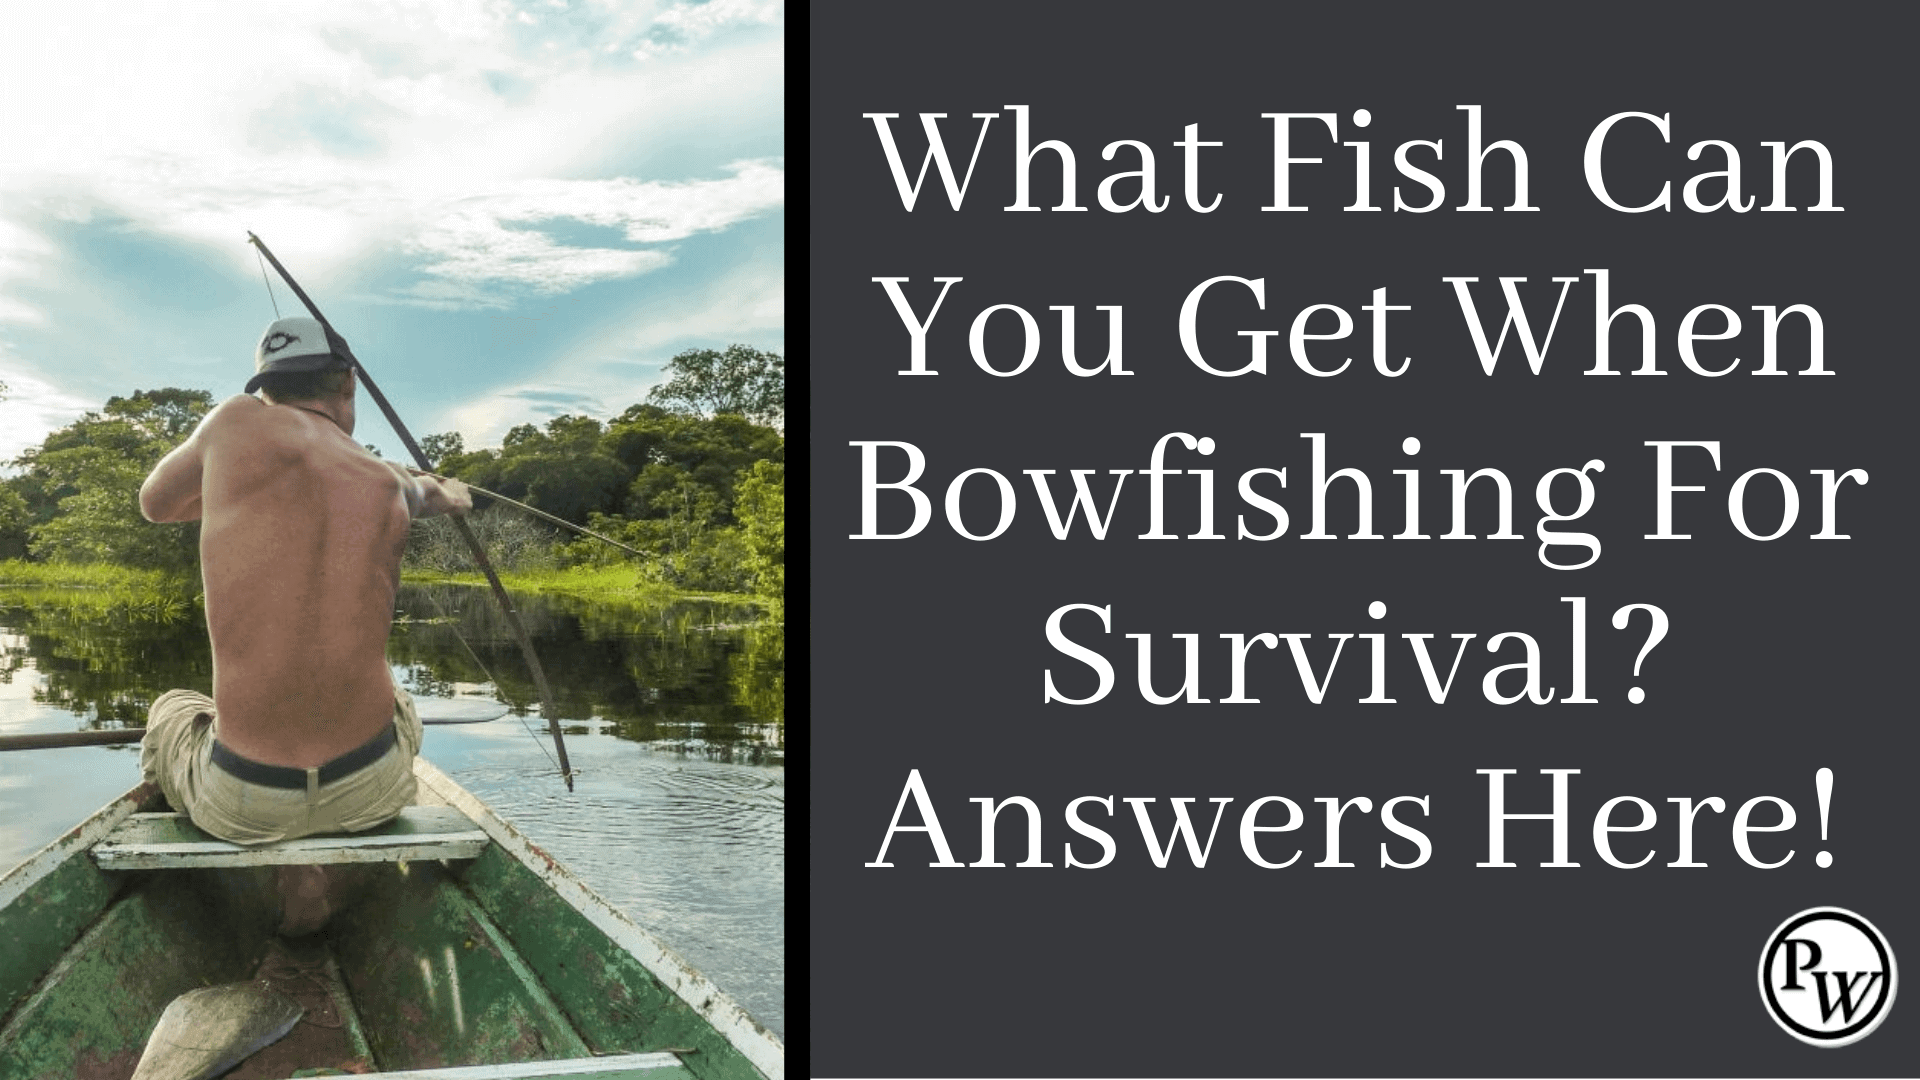 Bowfishing for Survival